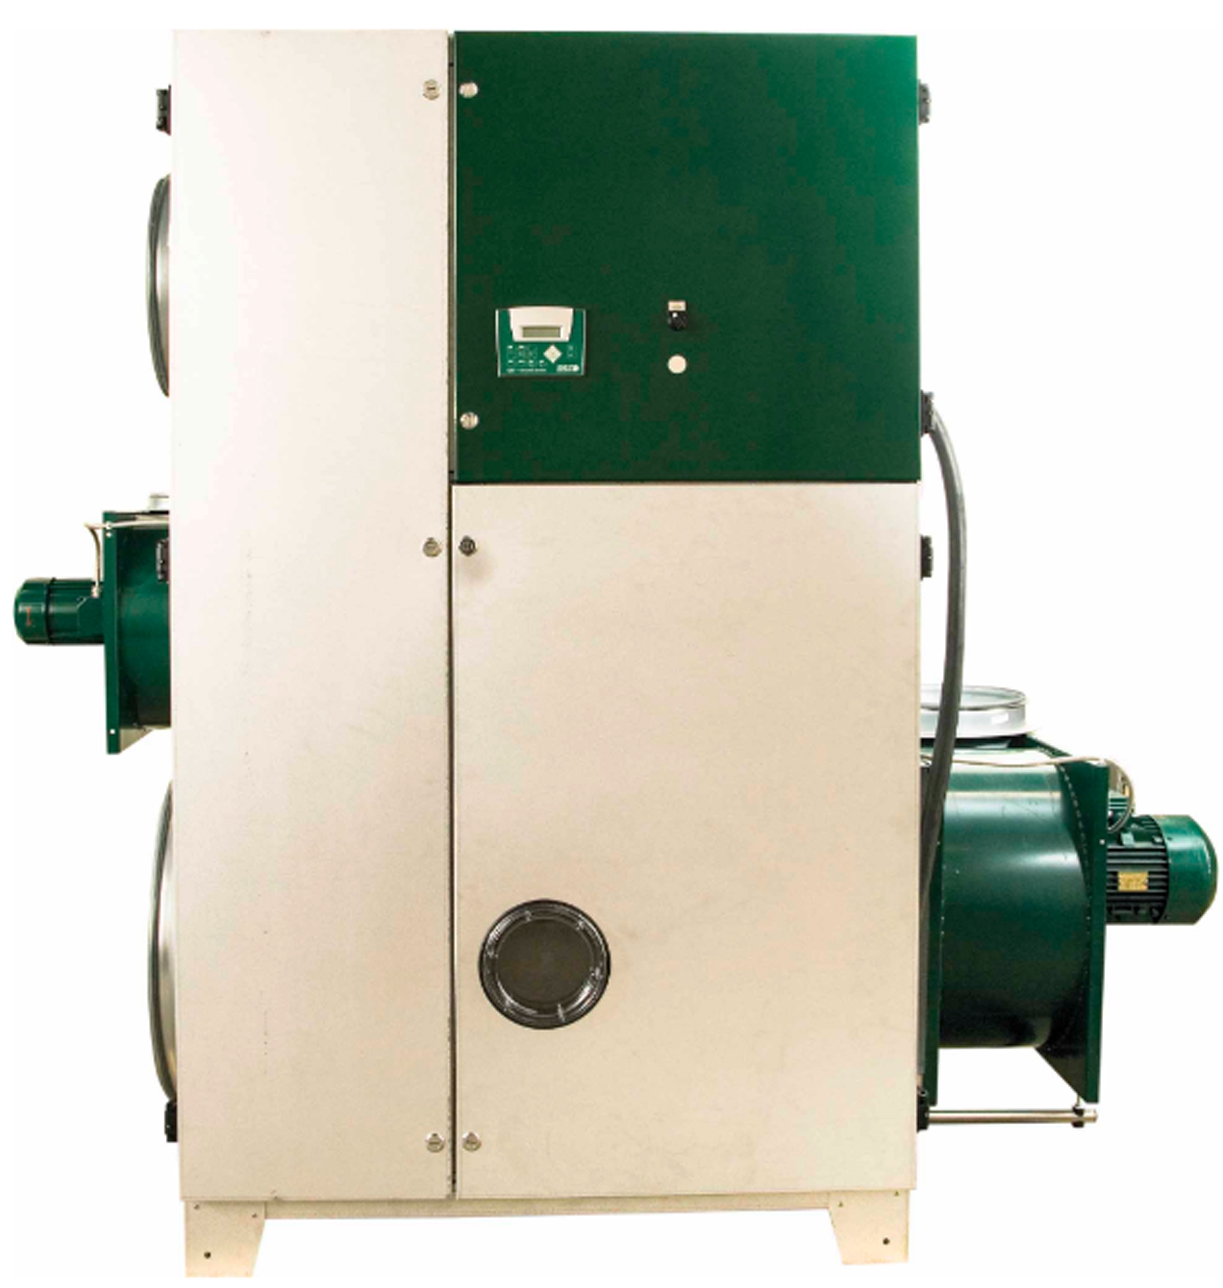 <p>CONSORB CZ-SERIES STD/ICE</p> - Industrial and comercial refrigeración equipment